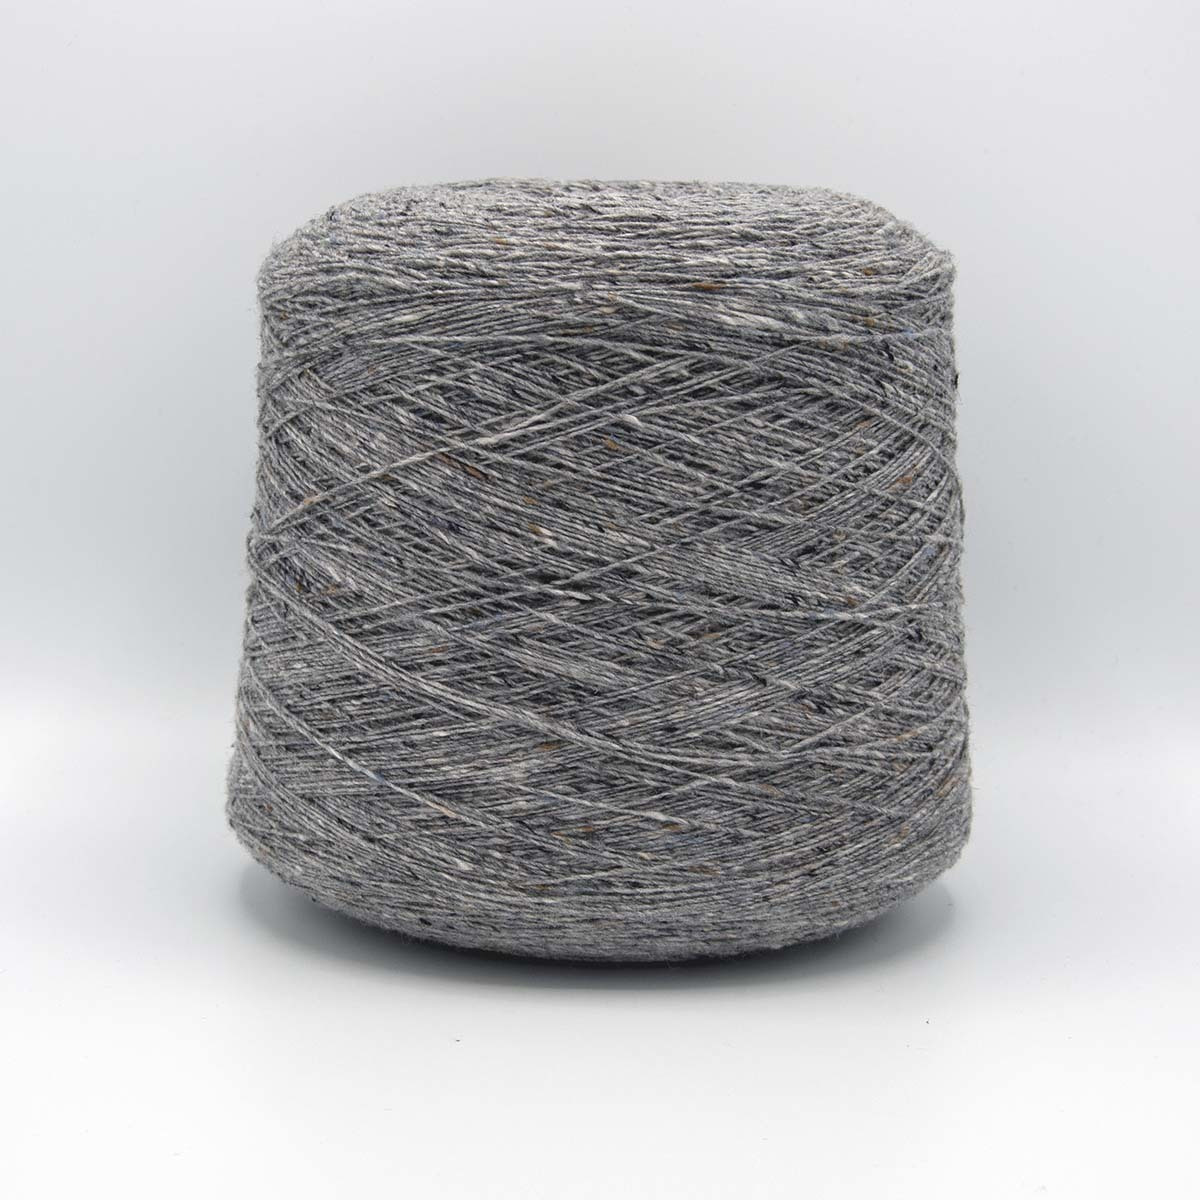 Knoll Yarns Soft Donegal (одинарный твид) - 5509